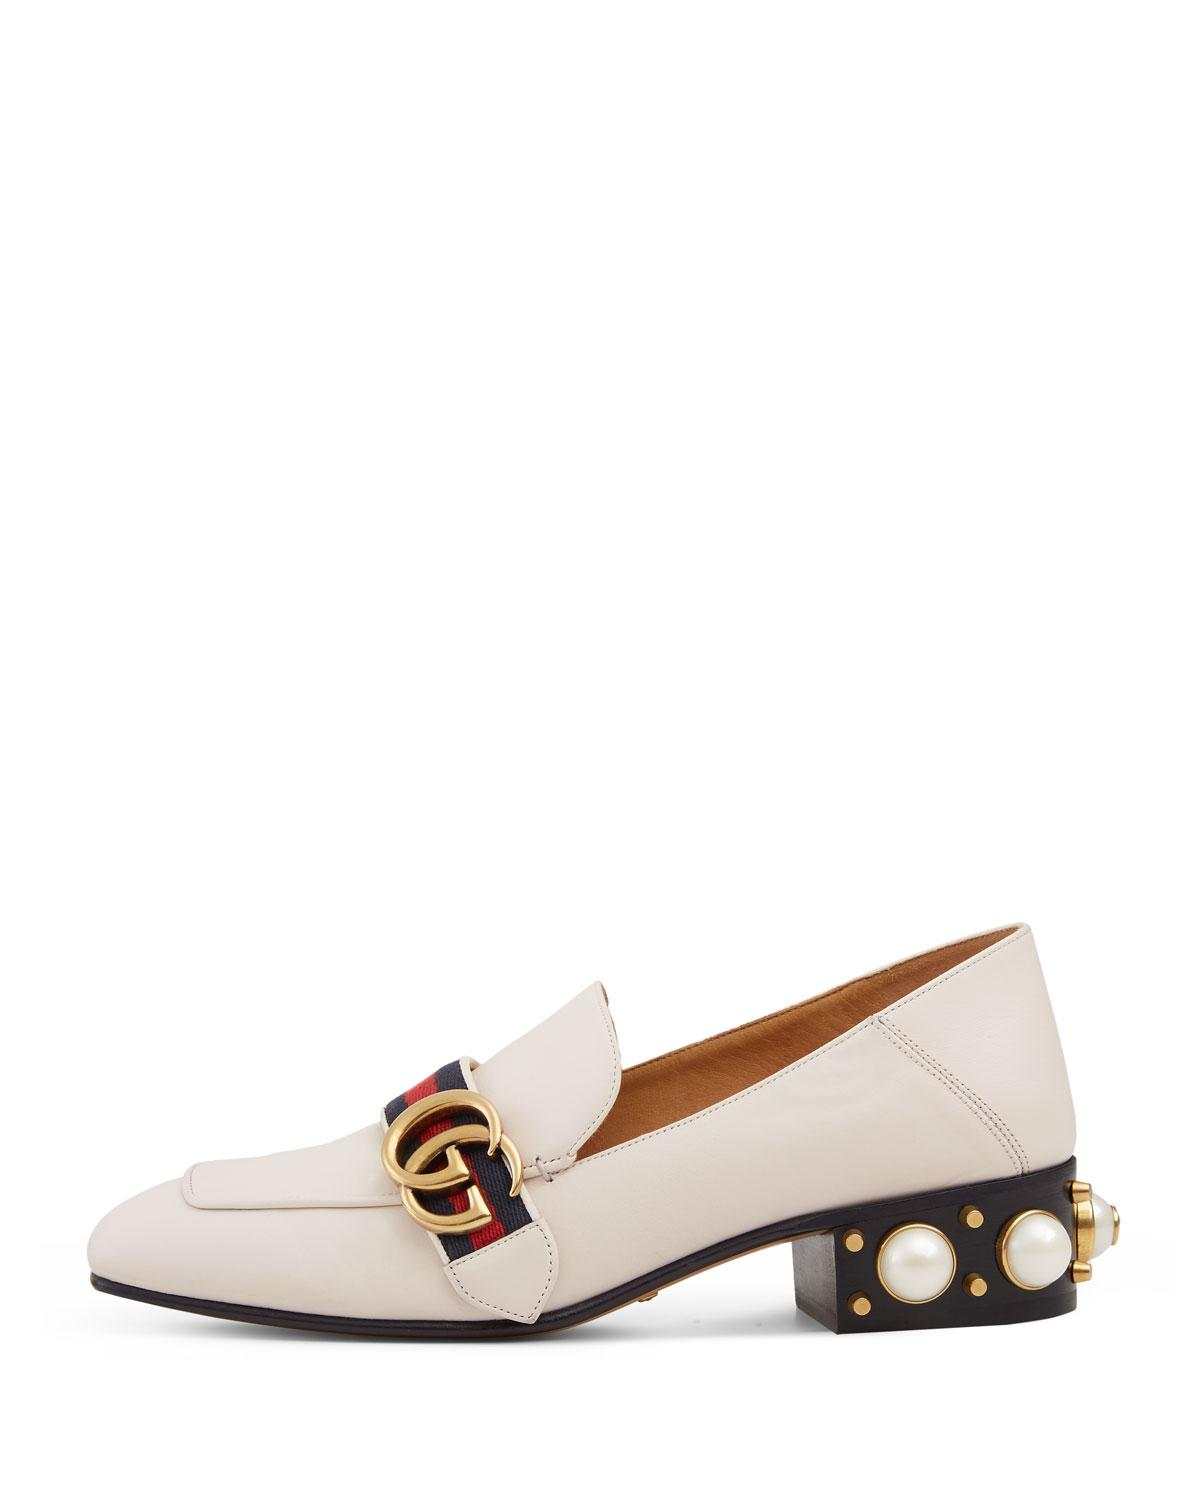 da90095b066 Lyst - Gucci Peyton Pearly-heel Loafer in White